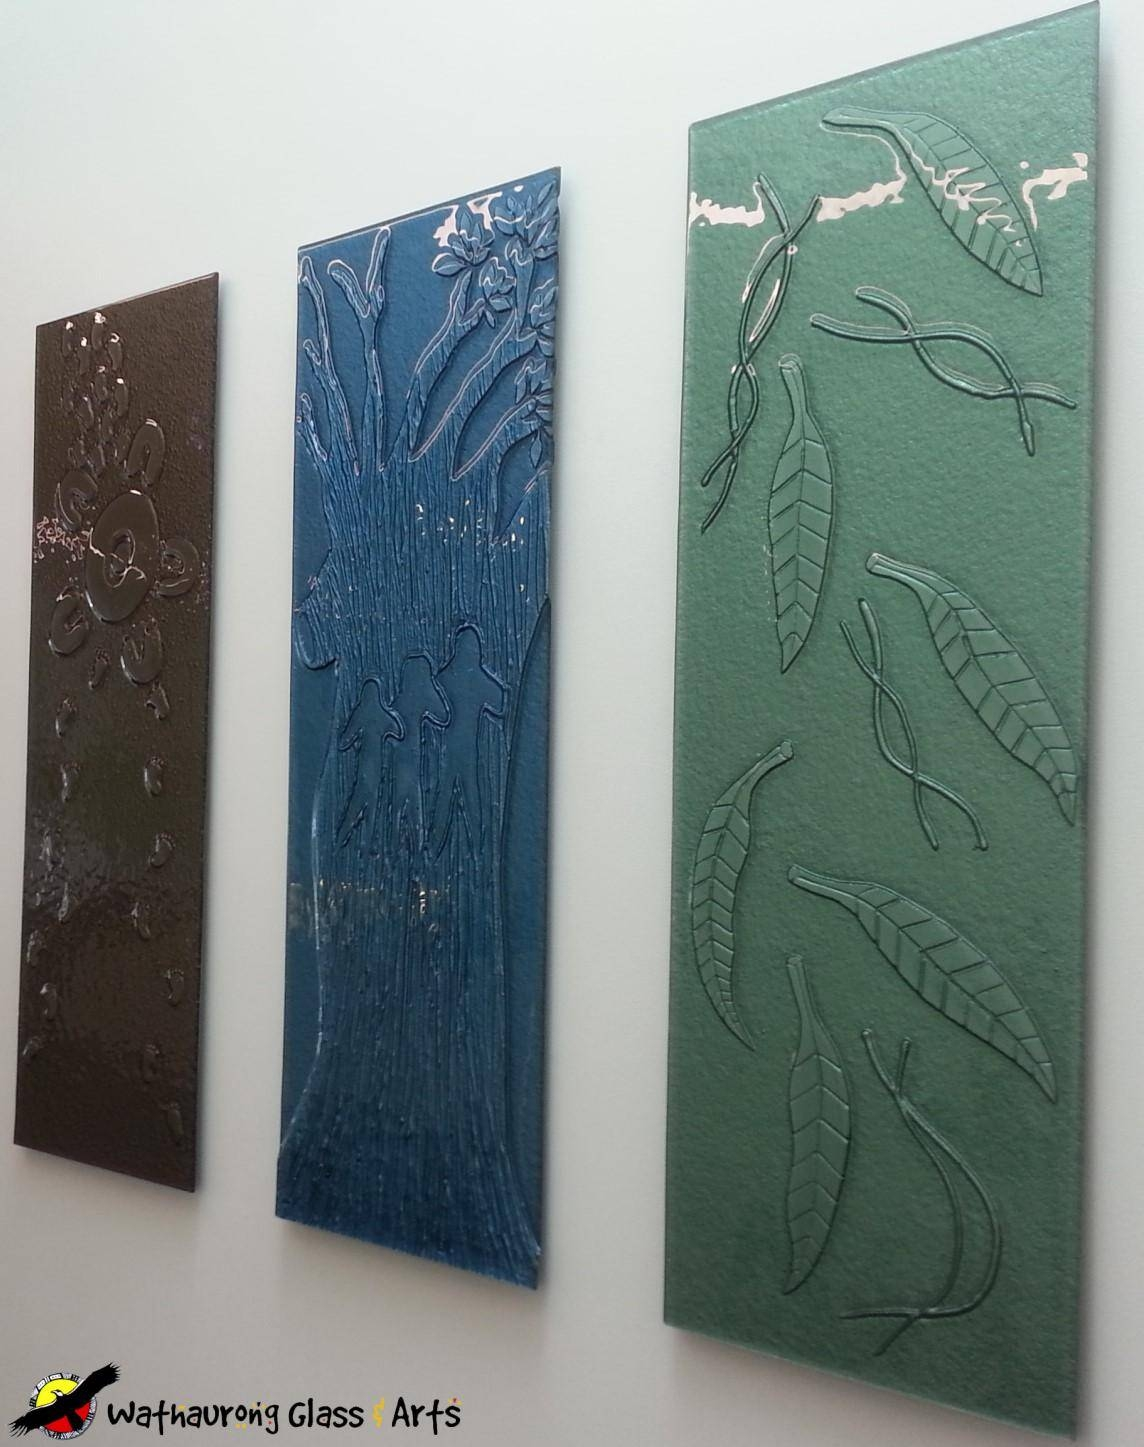 Internal Glass Wall Art – Wathaurong Glass With Regard To Most Up To Date Glass Wall Art Panels (View 16 of 20)